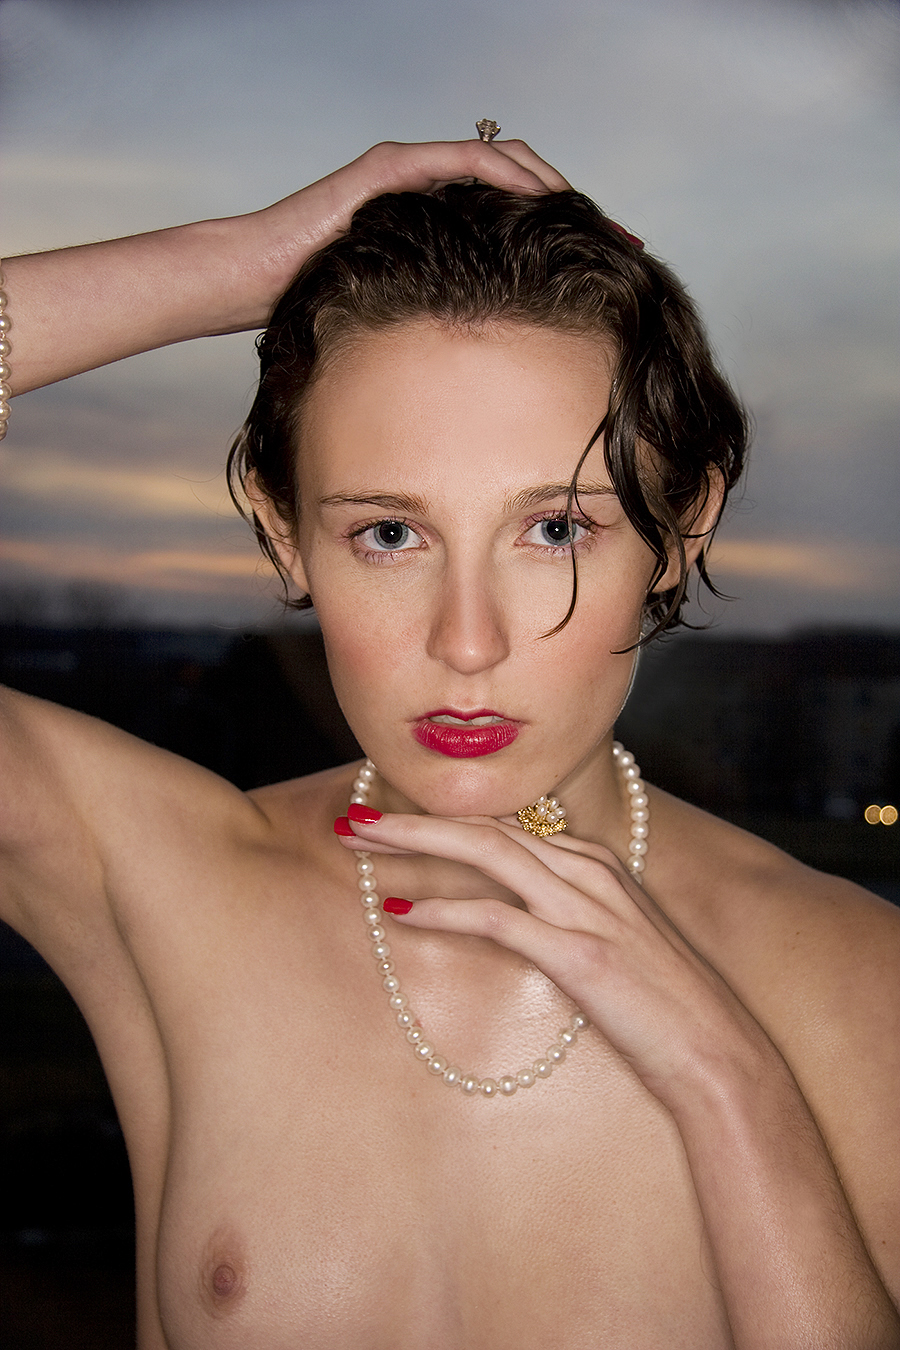 Tony_Ward_photography_portraiture_fashion_jewelry_necklace_pearl_young_topless_fashion_model_Elizabeth